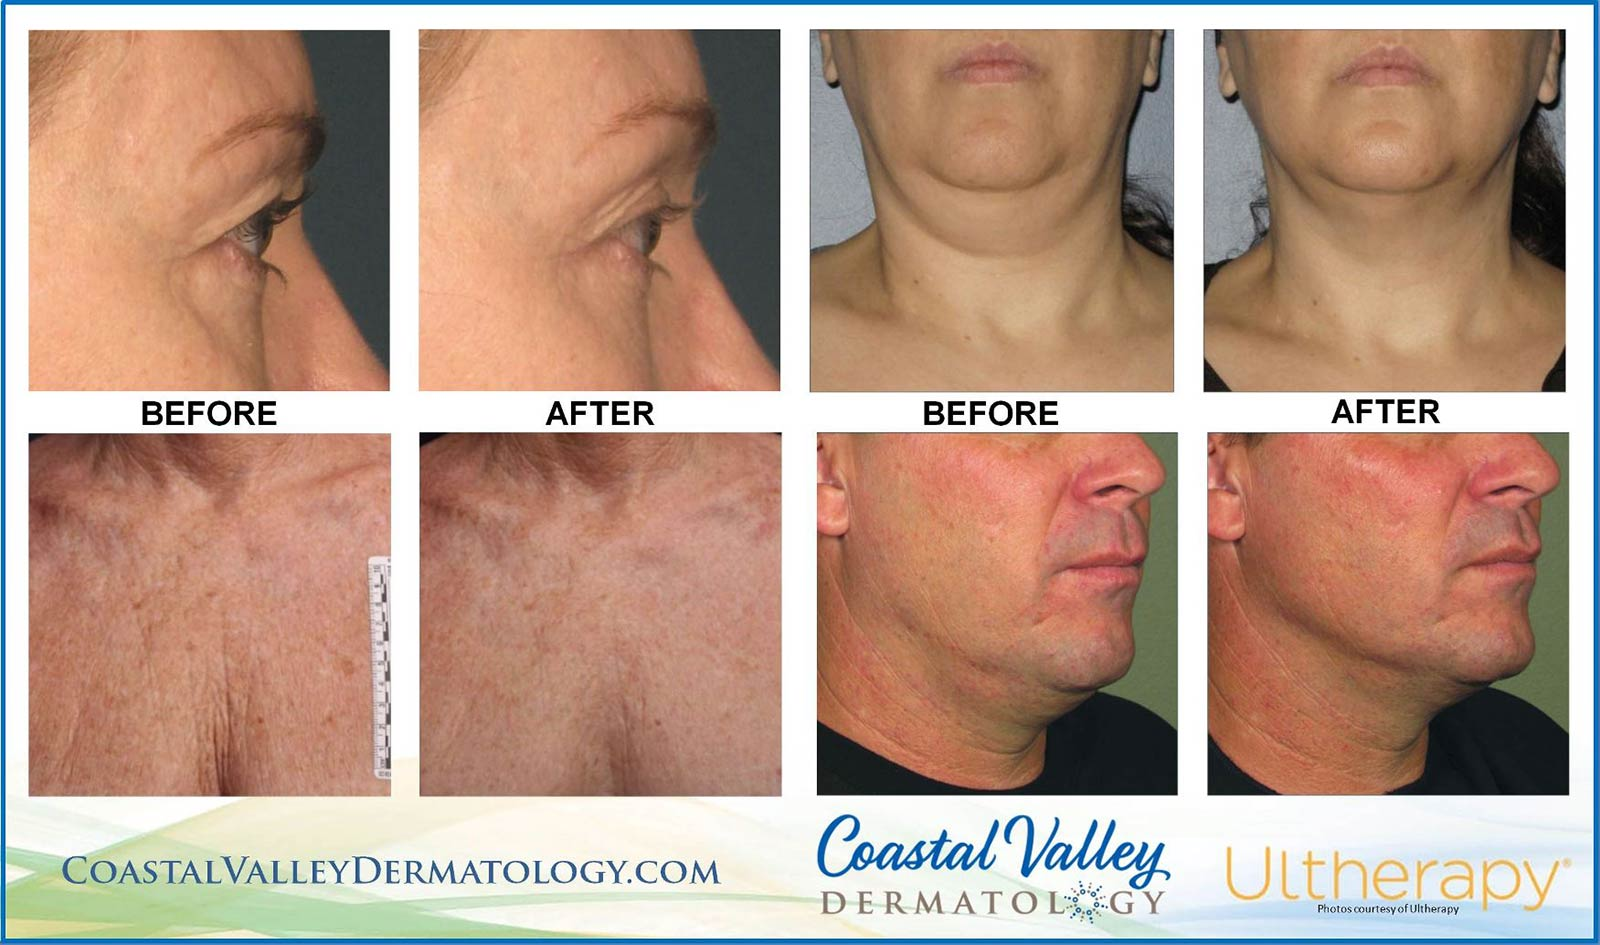 coastal-valley-dermatology-carmel-ultherapy-face-eyes-chest-results-photo